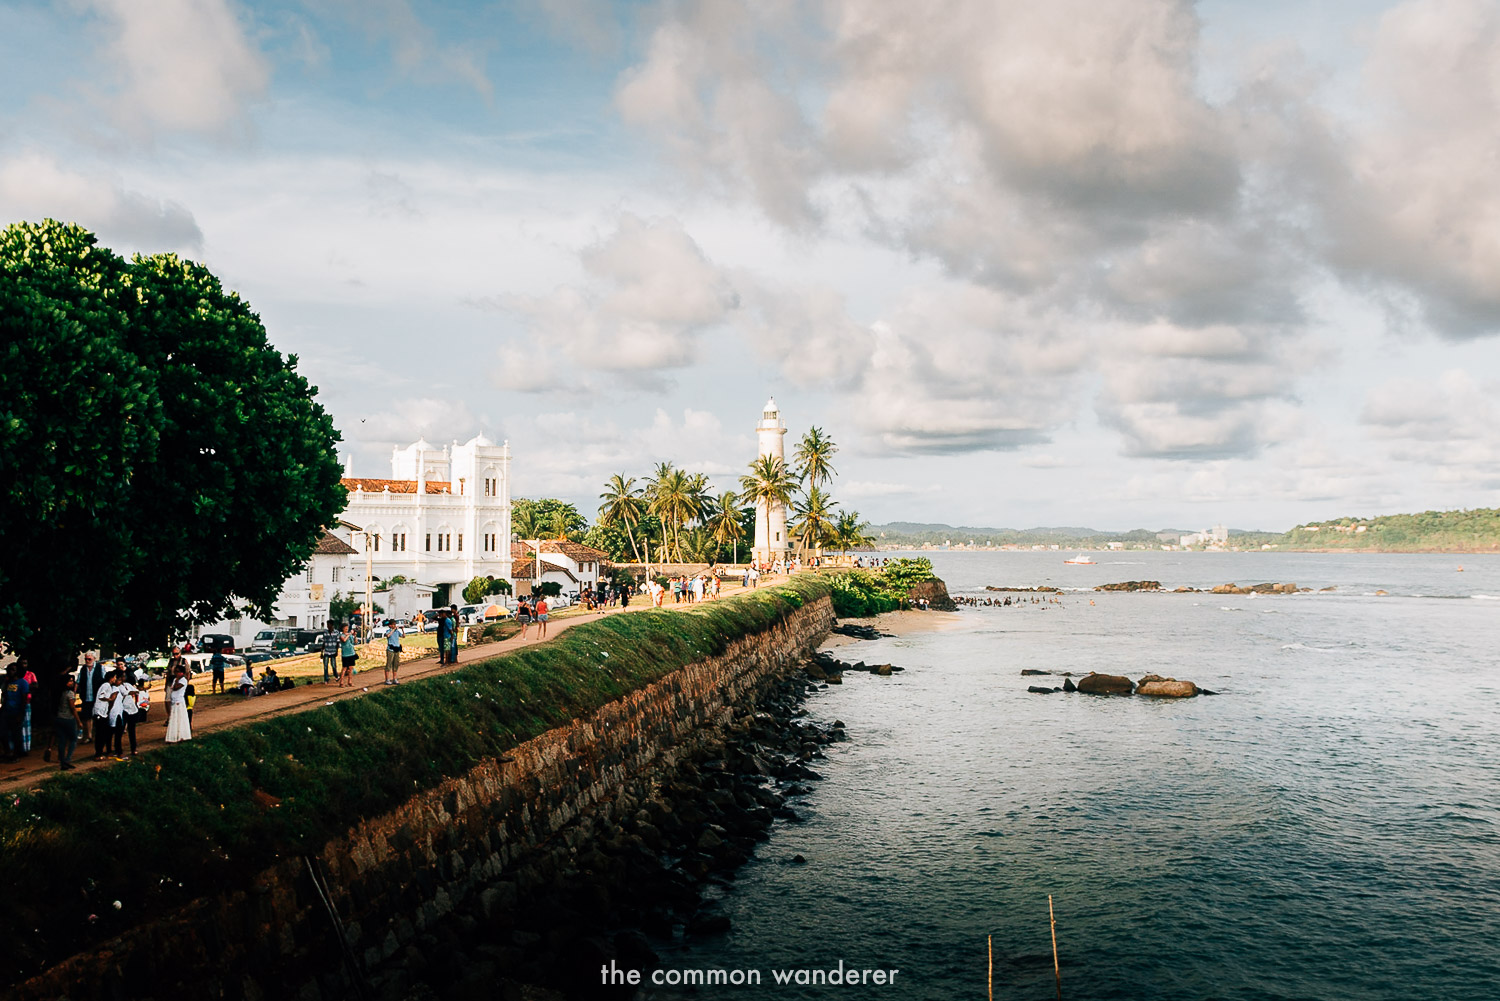 sri lanka travel tips - Sri Lanka is culturally rich with significant sites